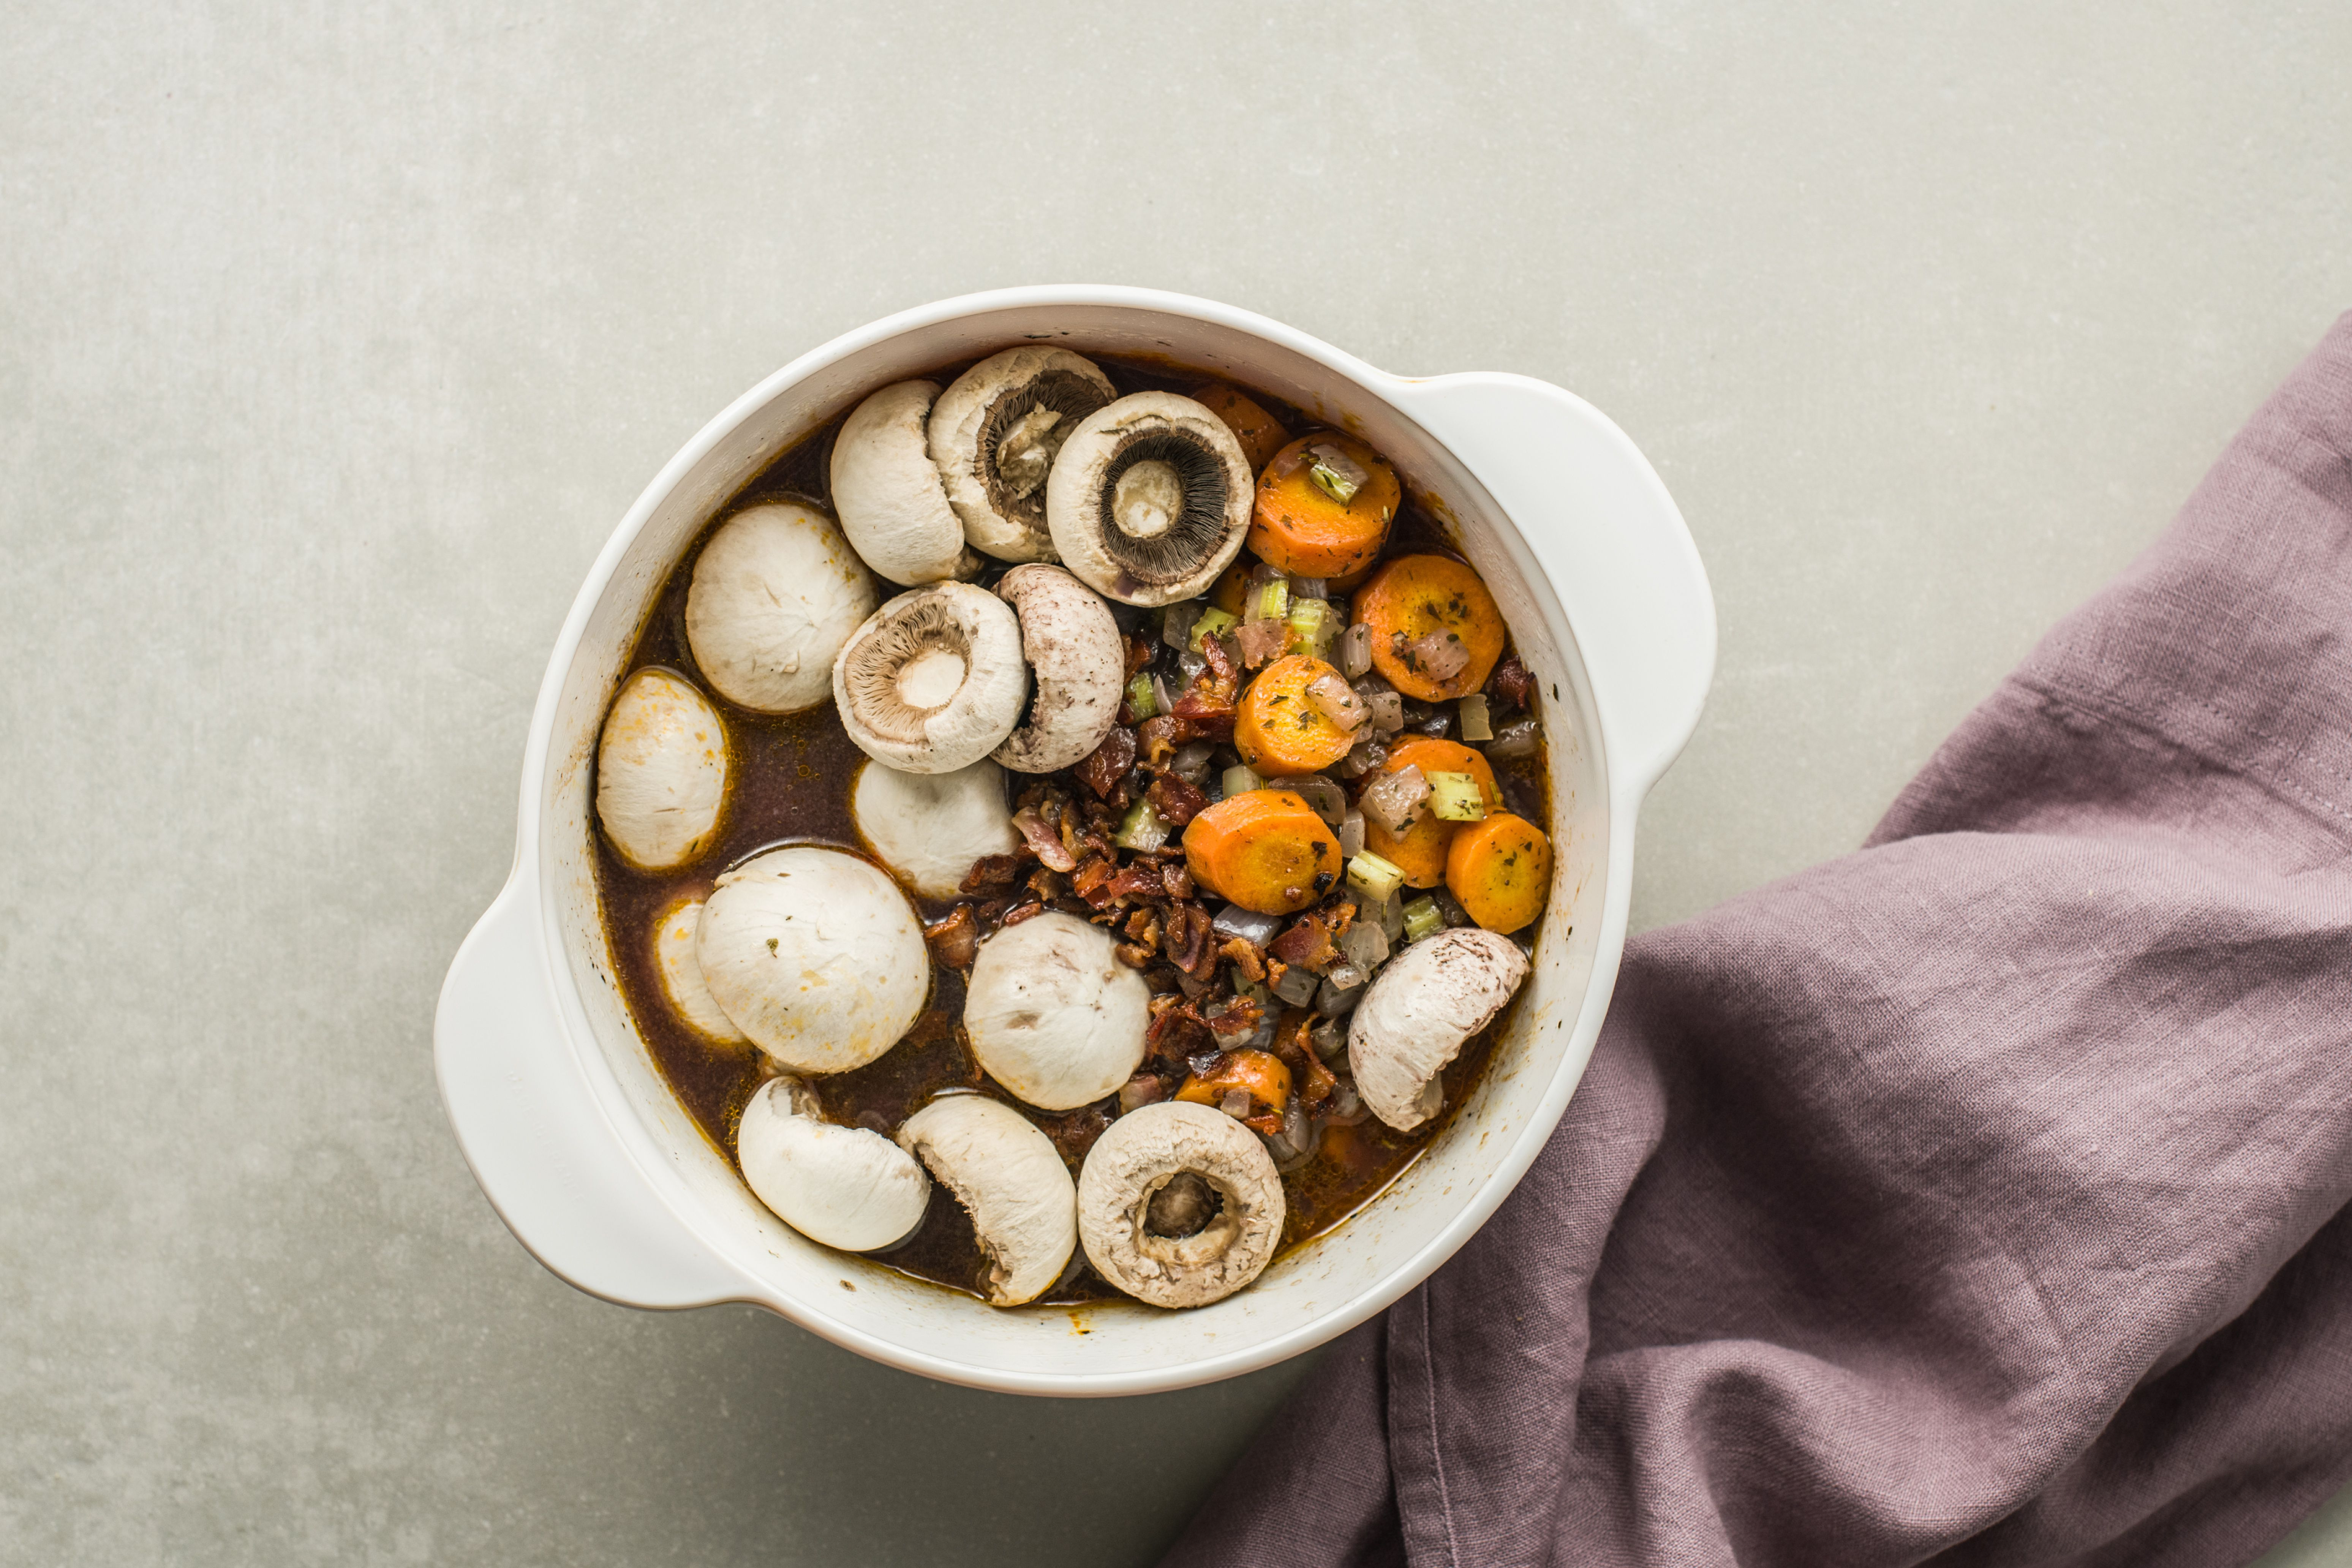 Cooked veggies and mushrooms added to pot with venison for stew